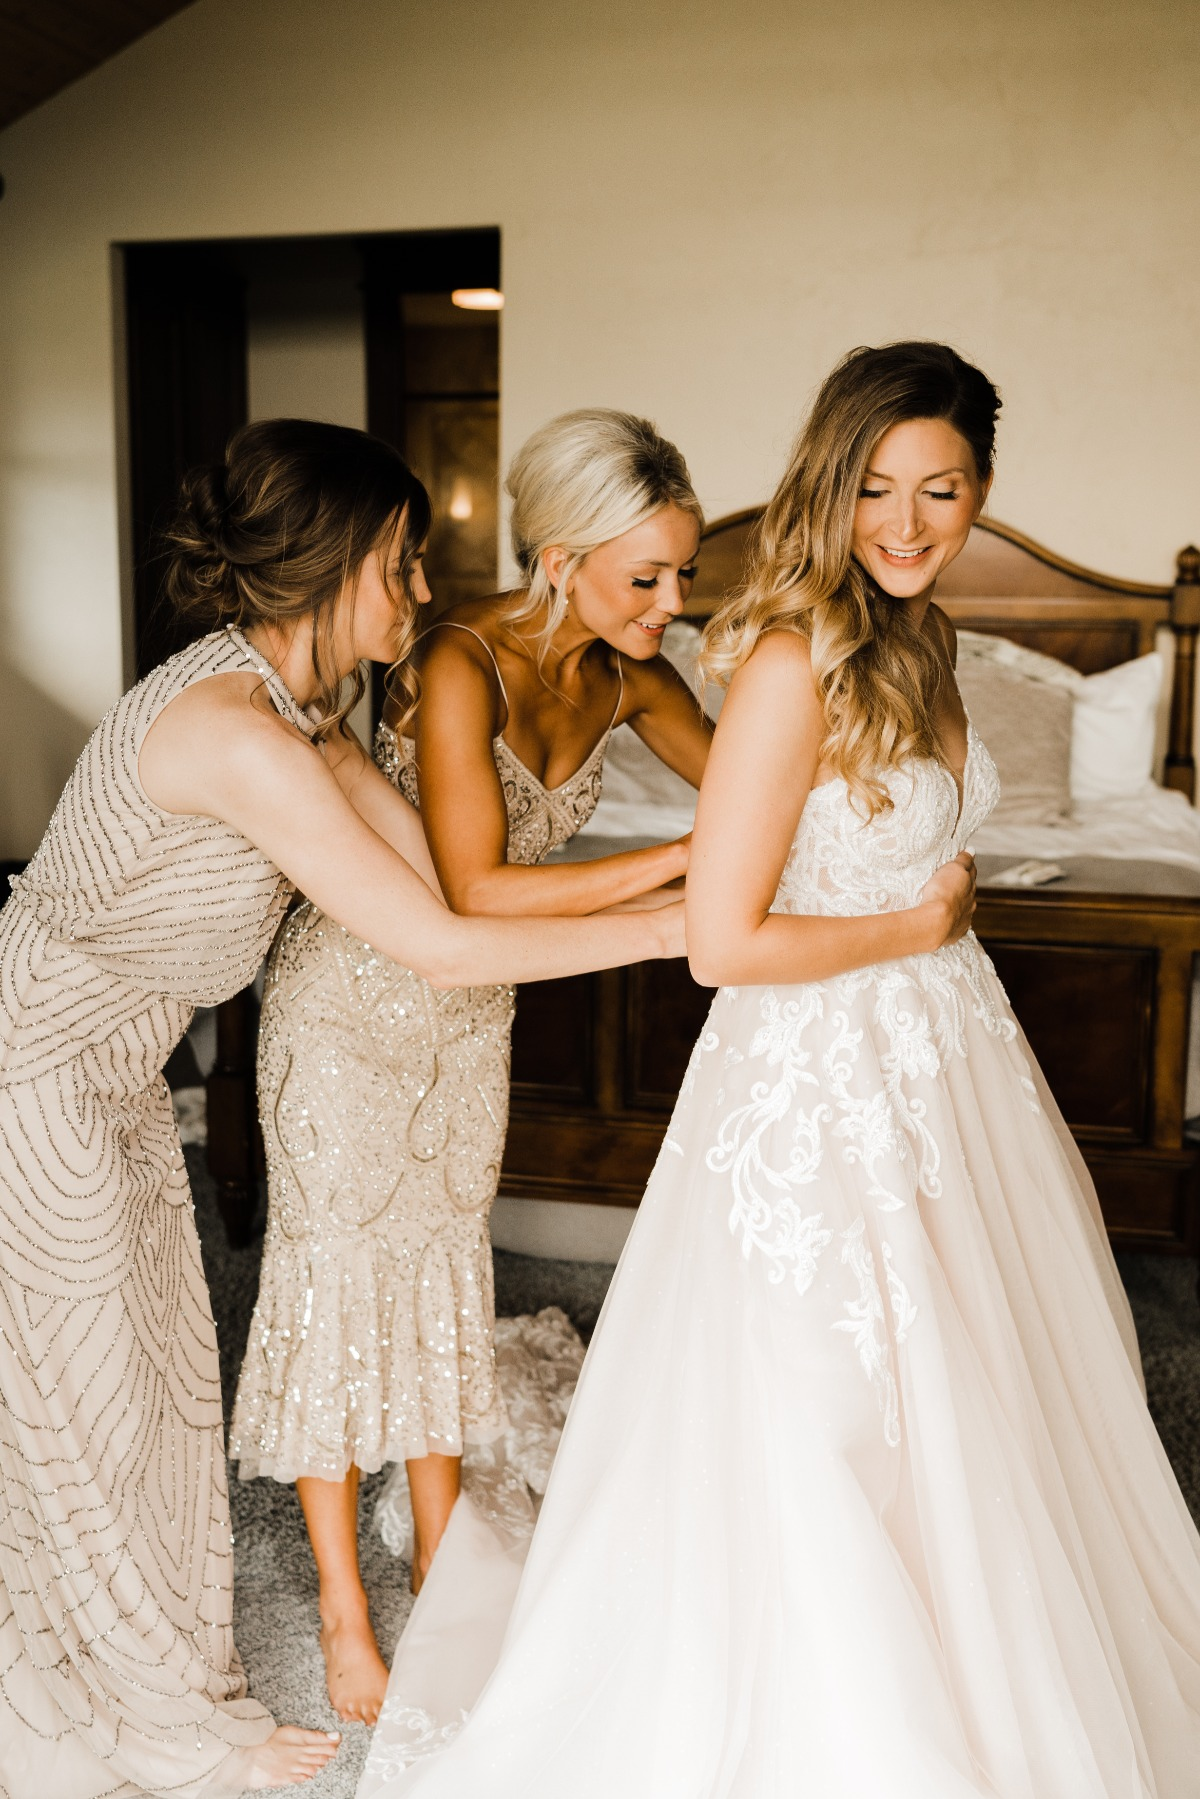 getting ready pose ideas with bridal party